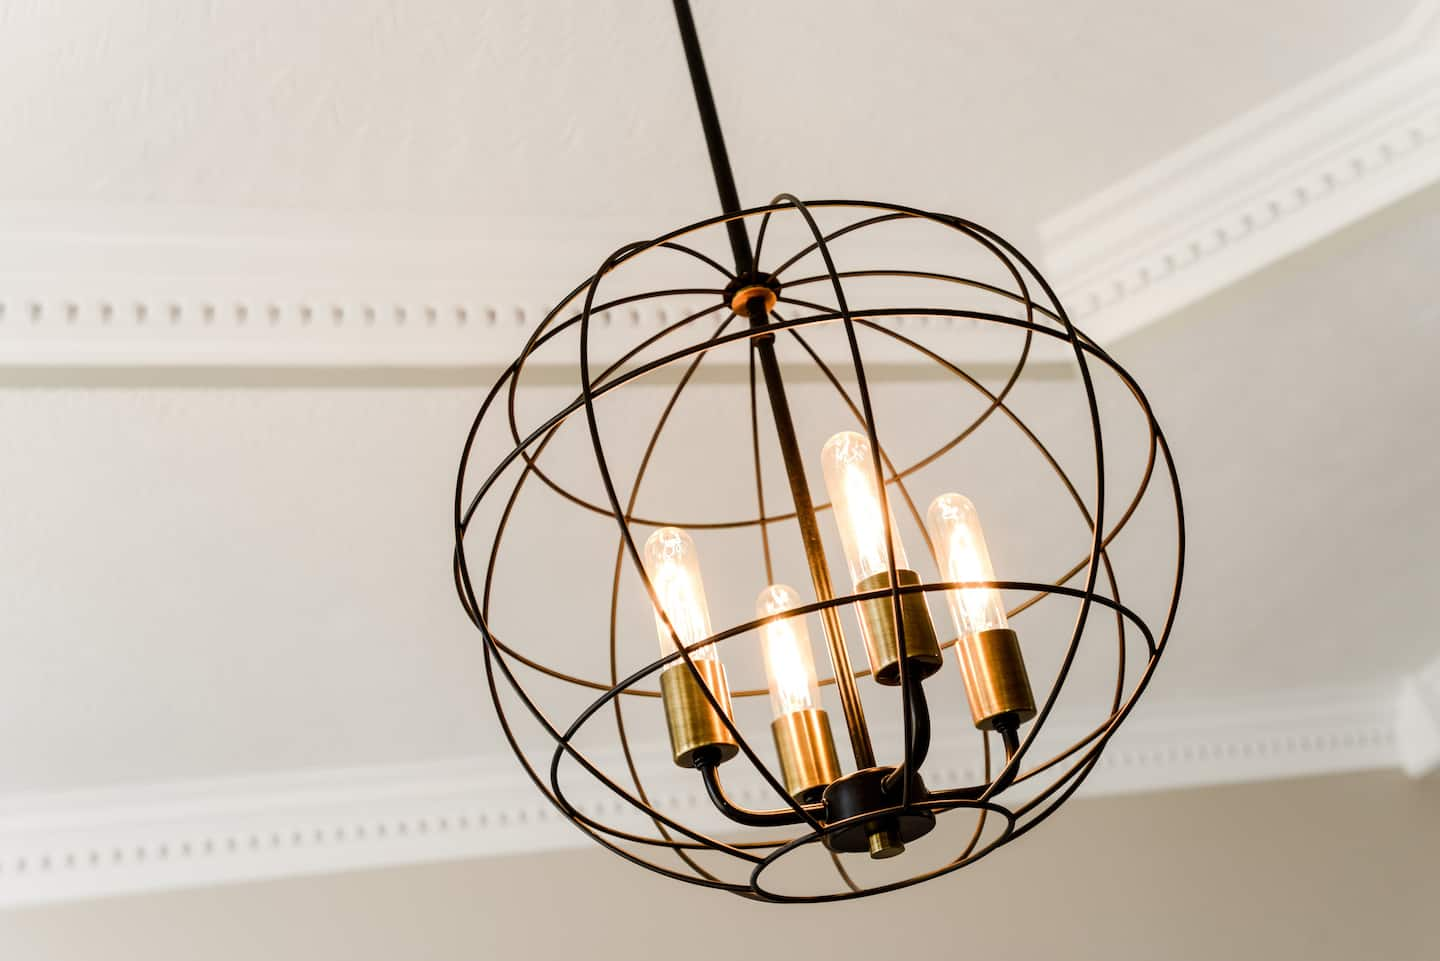 A wire frame light with four bulbs hangs from the ceiling